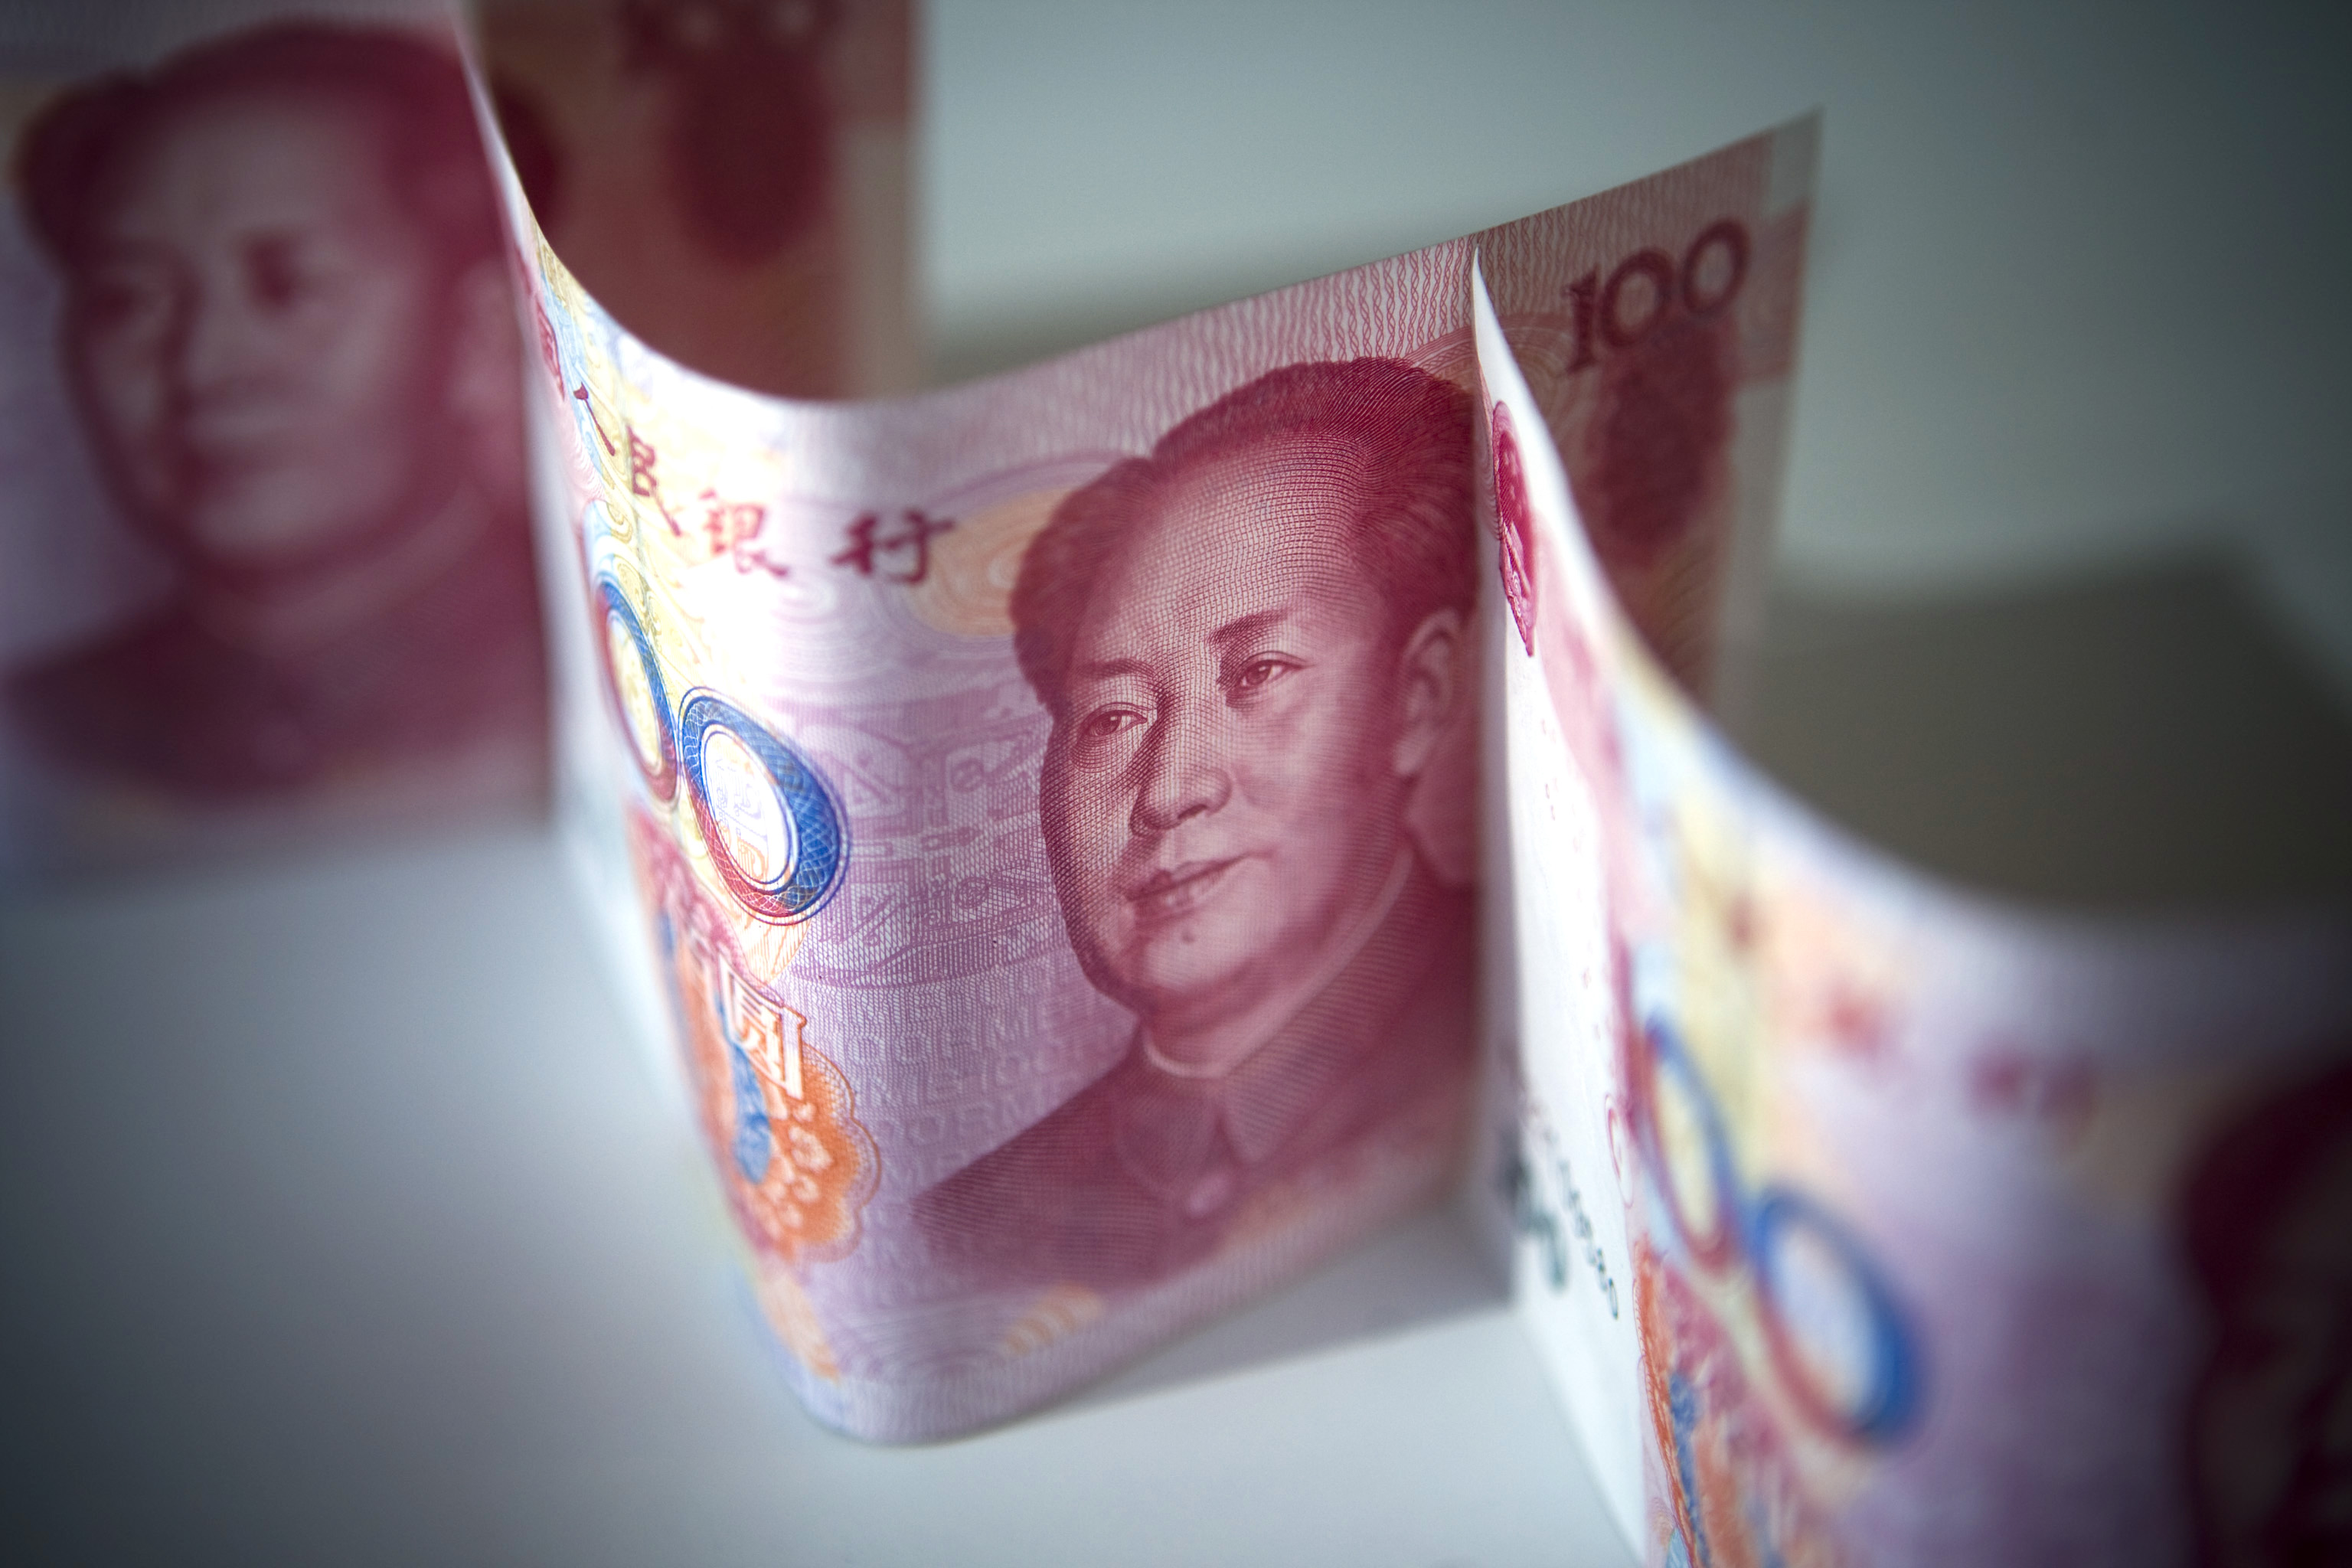 Chinese Renminbi bank notes are displayed for a photograph in Beijing, China, on Friday, Jan 9, 2009. The yuan headed for the first weekly decline since the five days through Dec. 19 on speculation China is preventing gaines to aid exporter and stimulate economic growth. Bonds advanced. Photographer: Nelson Ching/Bloomberg News